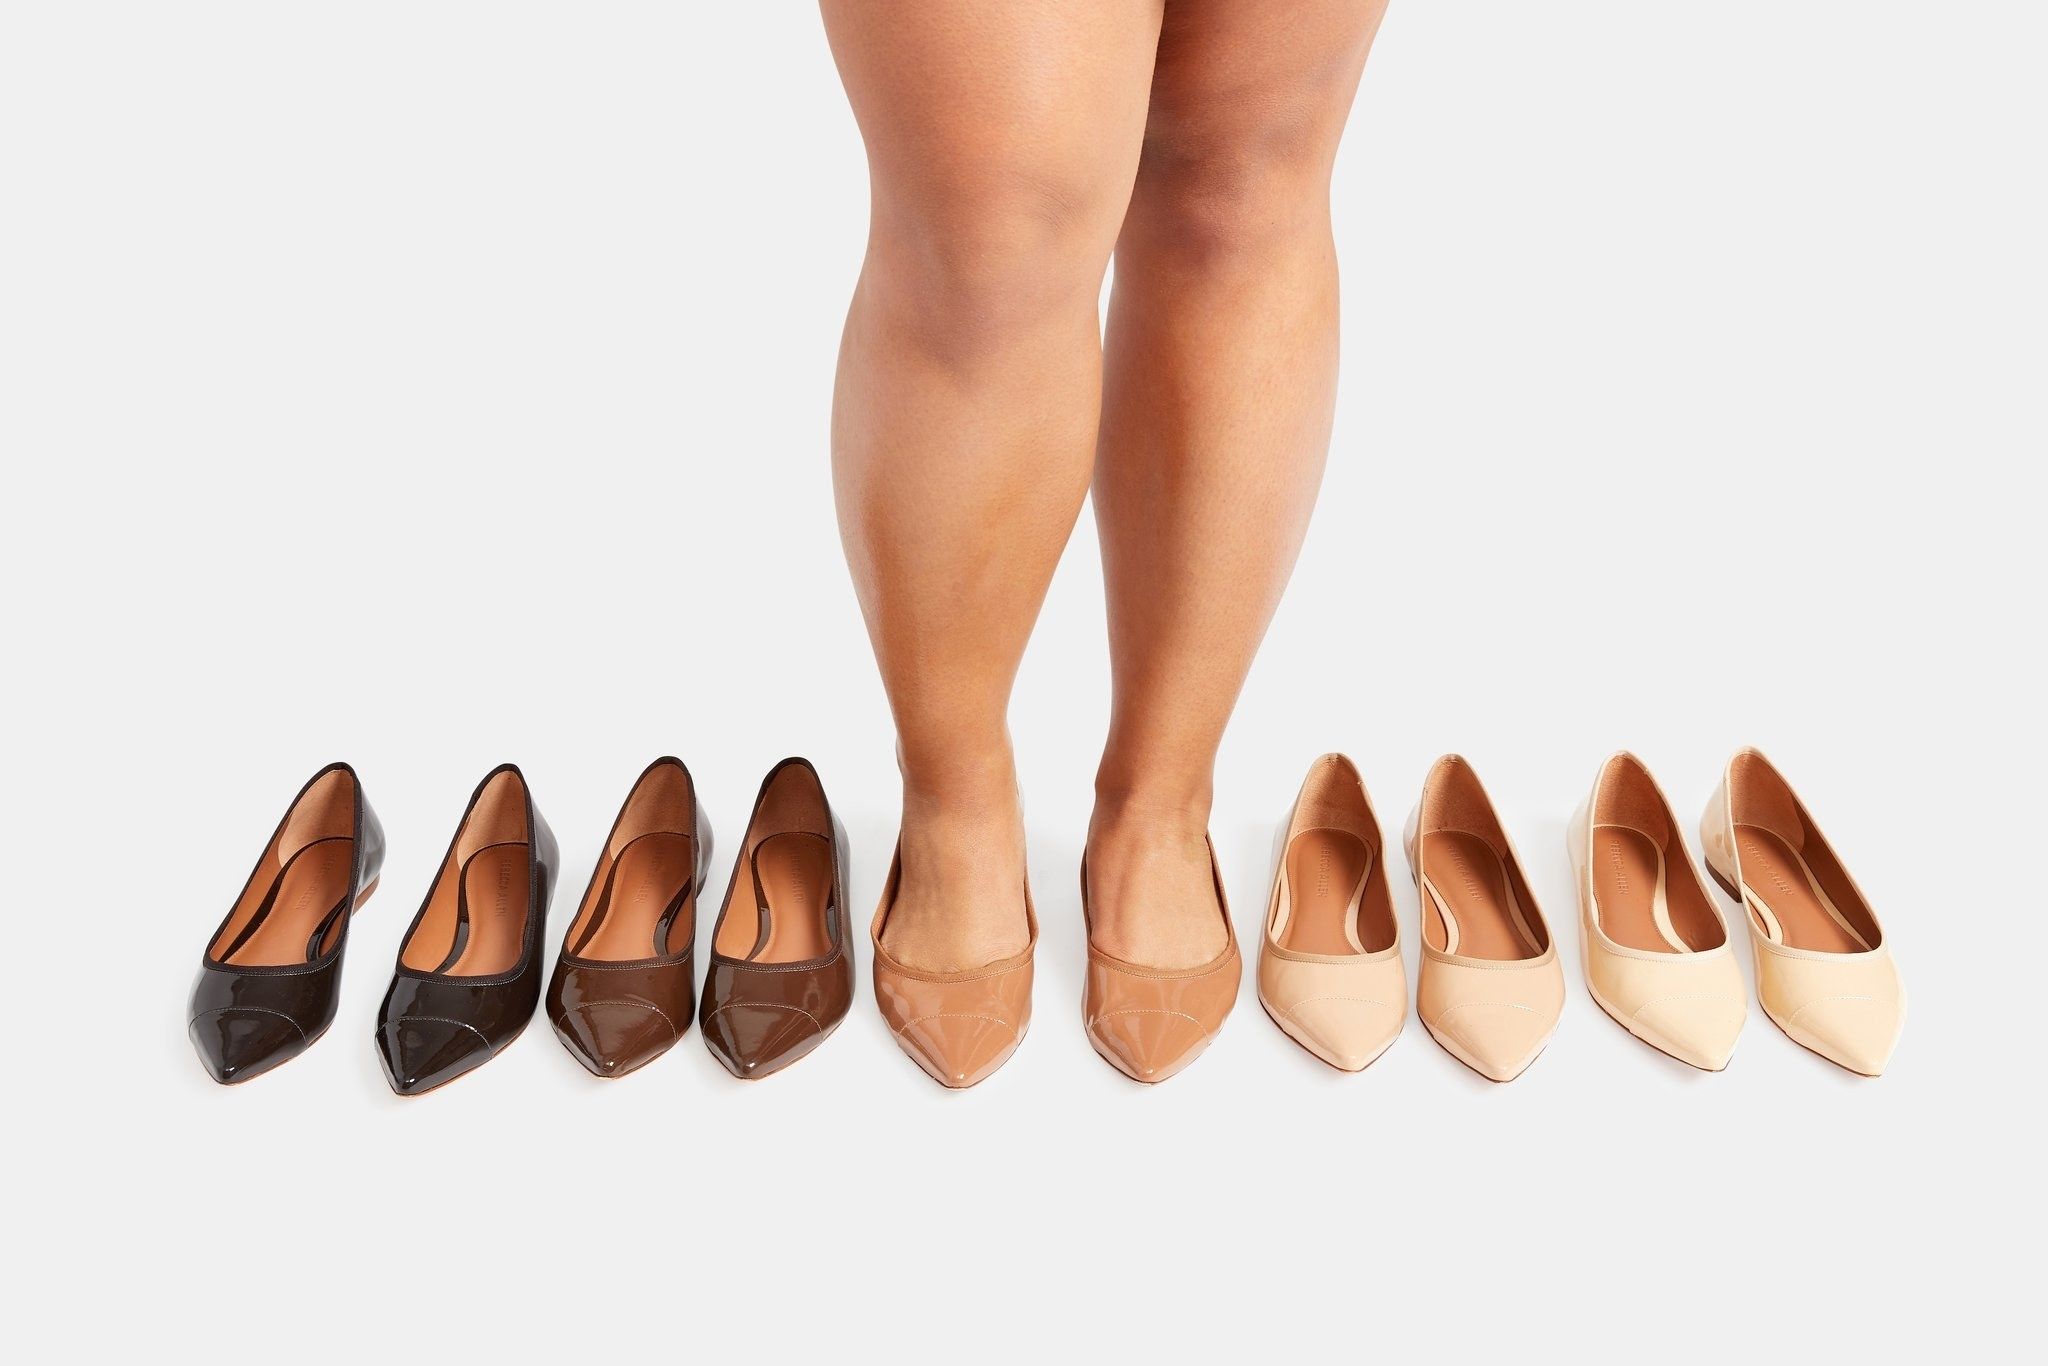 Model wearing the middle of the five shades of shoe, with all five pictured